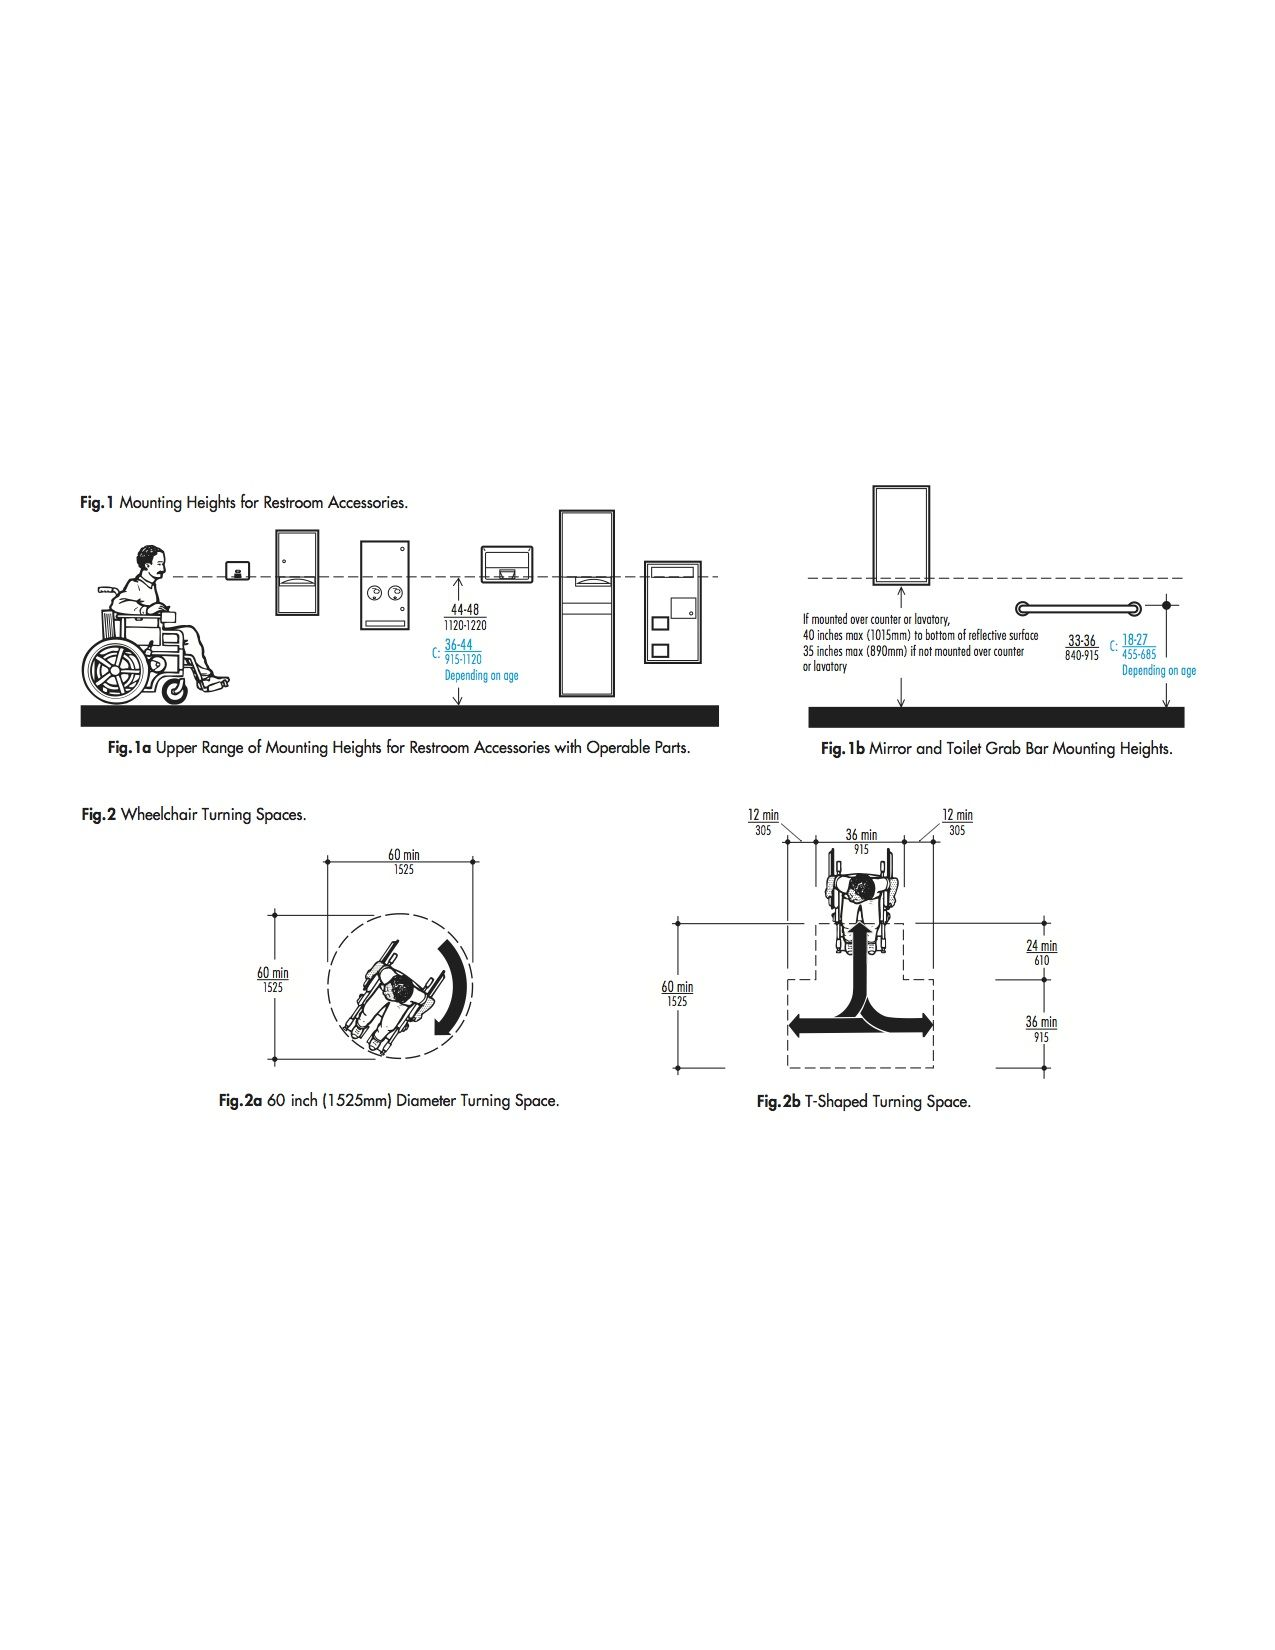 Ada Bathroom Height Standards Requirements with Mirror